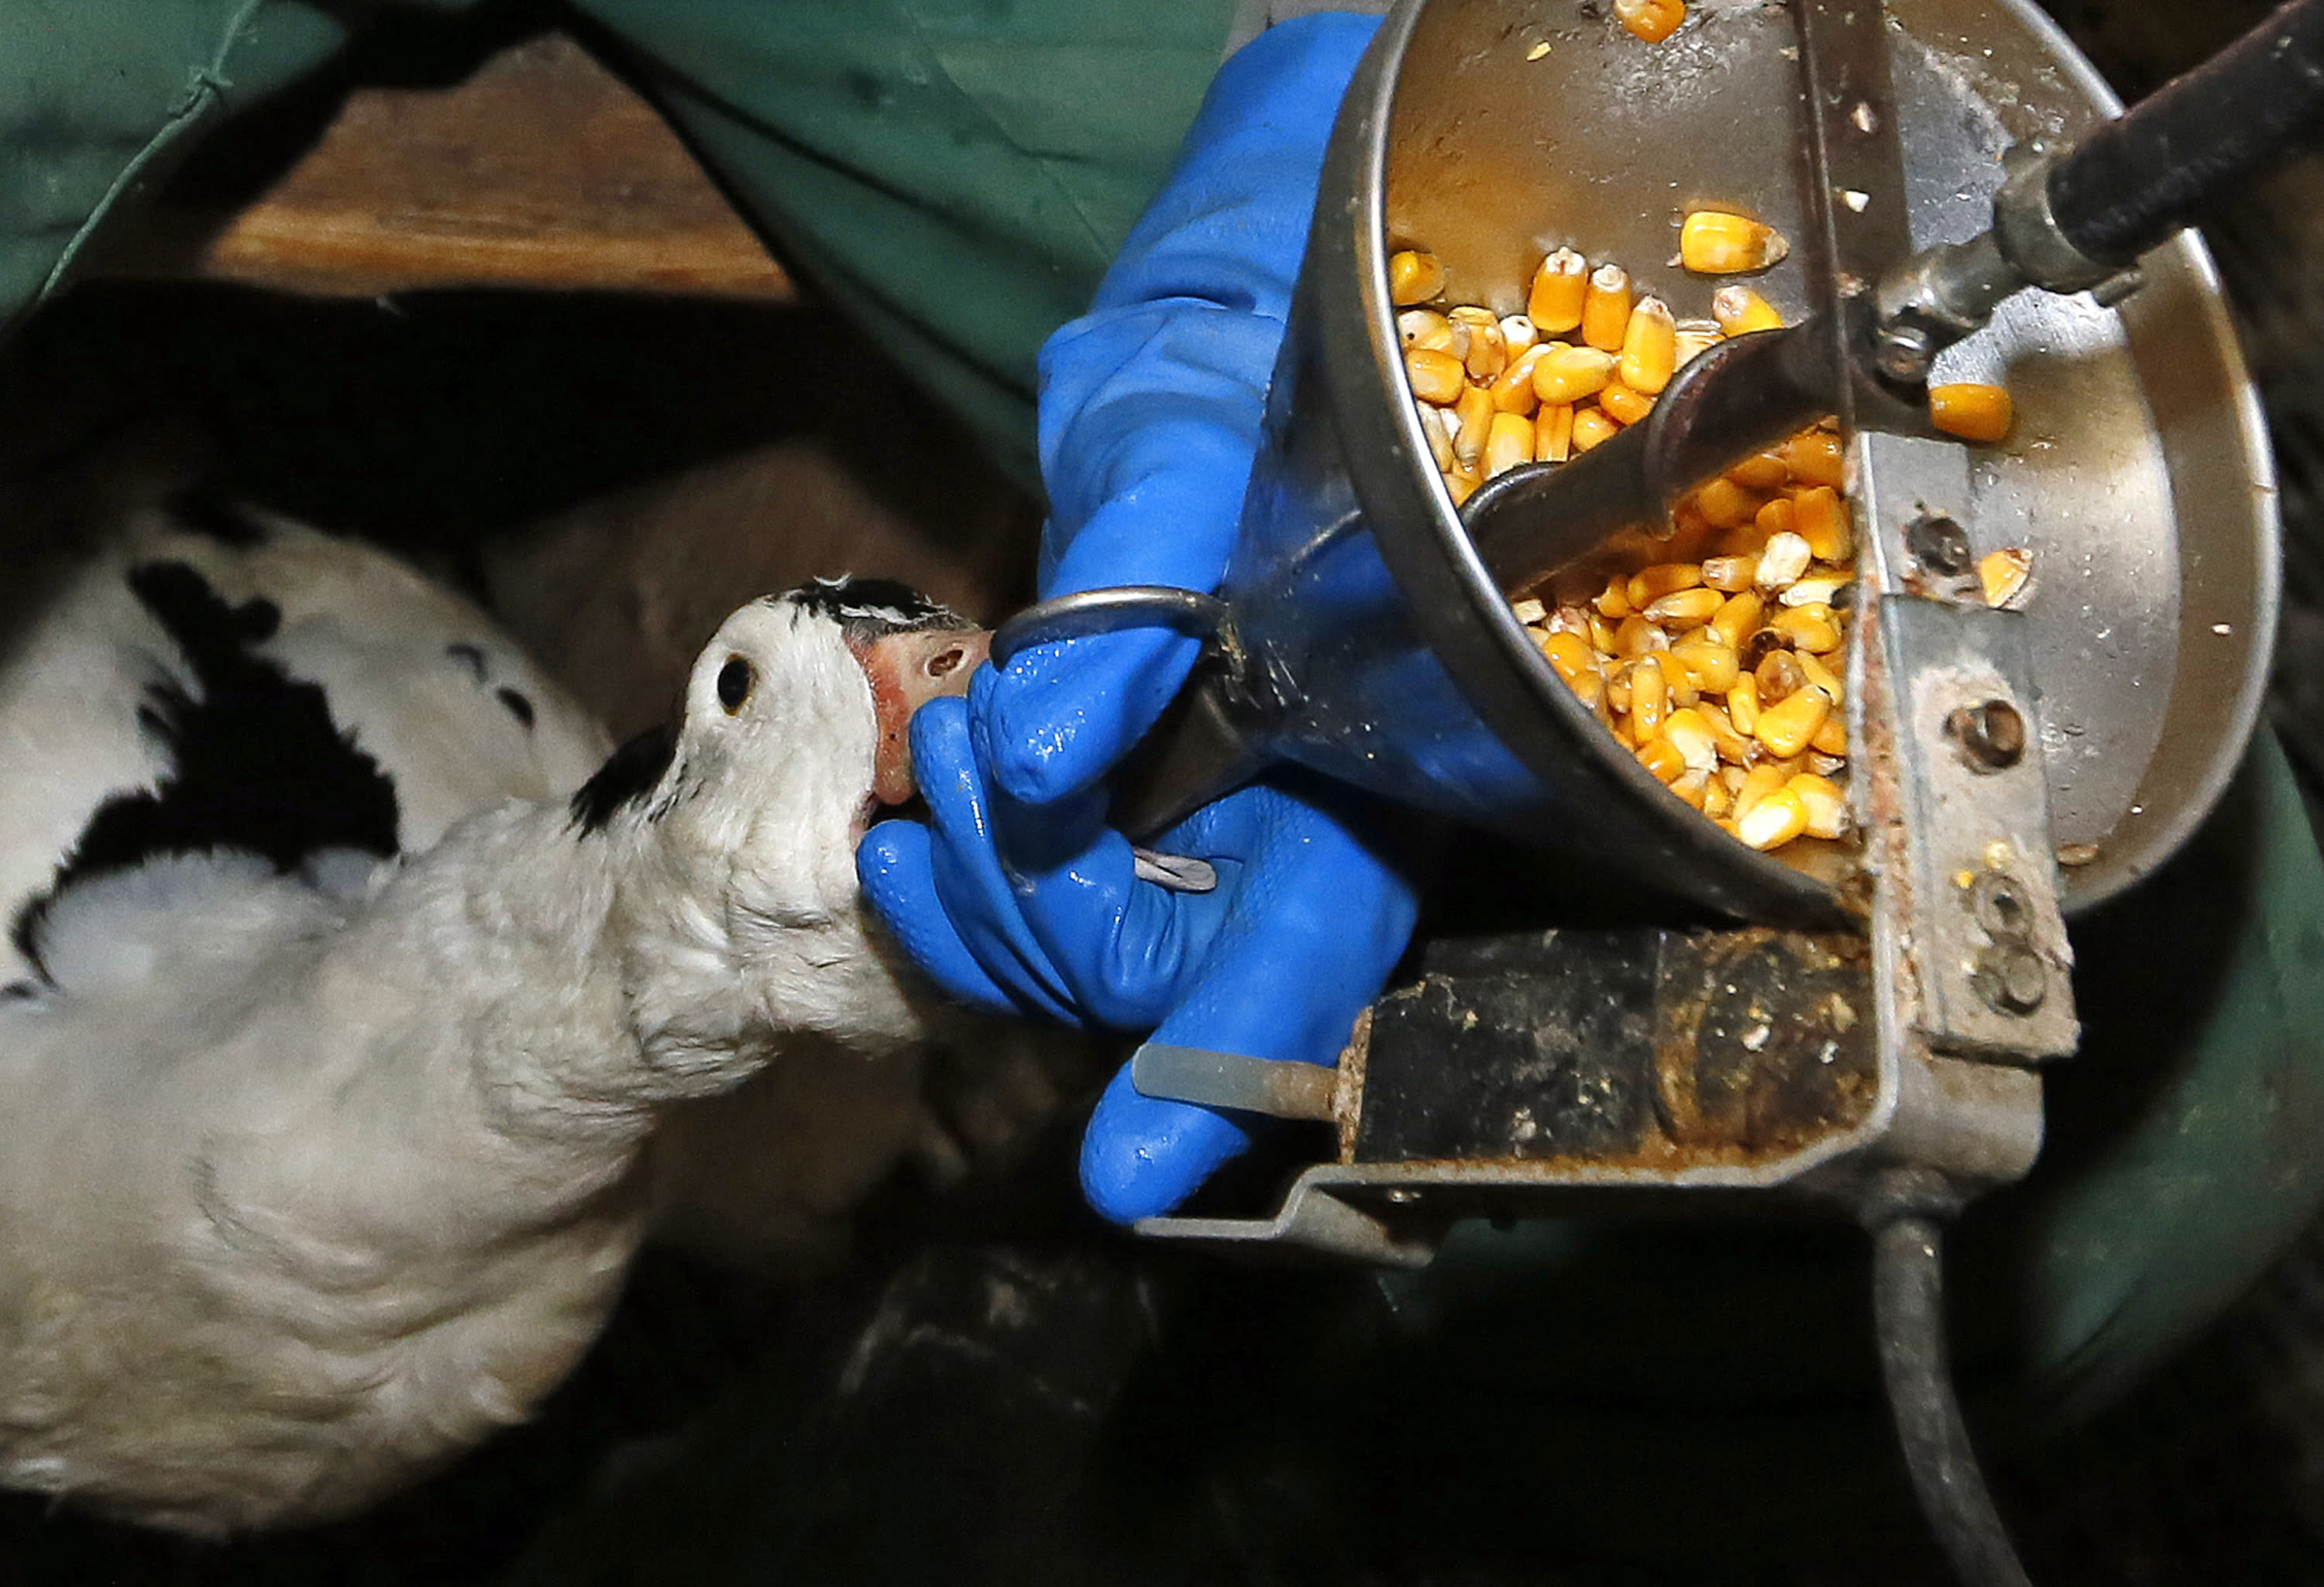 FILE - In this Dec. 8, 2016, file photo, foie gras producer Robin Arribit force-feeds a duck with corn in La Bastide Clairence, southwestern France. Foie gras is back on the menu in California after a judge ruled the rich dish can't be prevented from being brought in from out of state. California's ban on the delicacy, the fattened liver of a duck or goose, was challenged by out-of-state producers. An appeals court upheld the ban, but on Tuesday, July 14, 2020, a judge ruled for the plaintiffs, including farmers in Canada and New York. (AP Photo/Bob Edme, File)